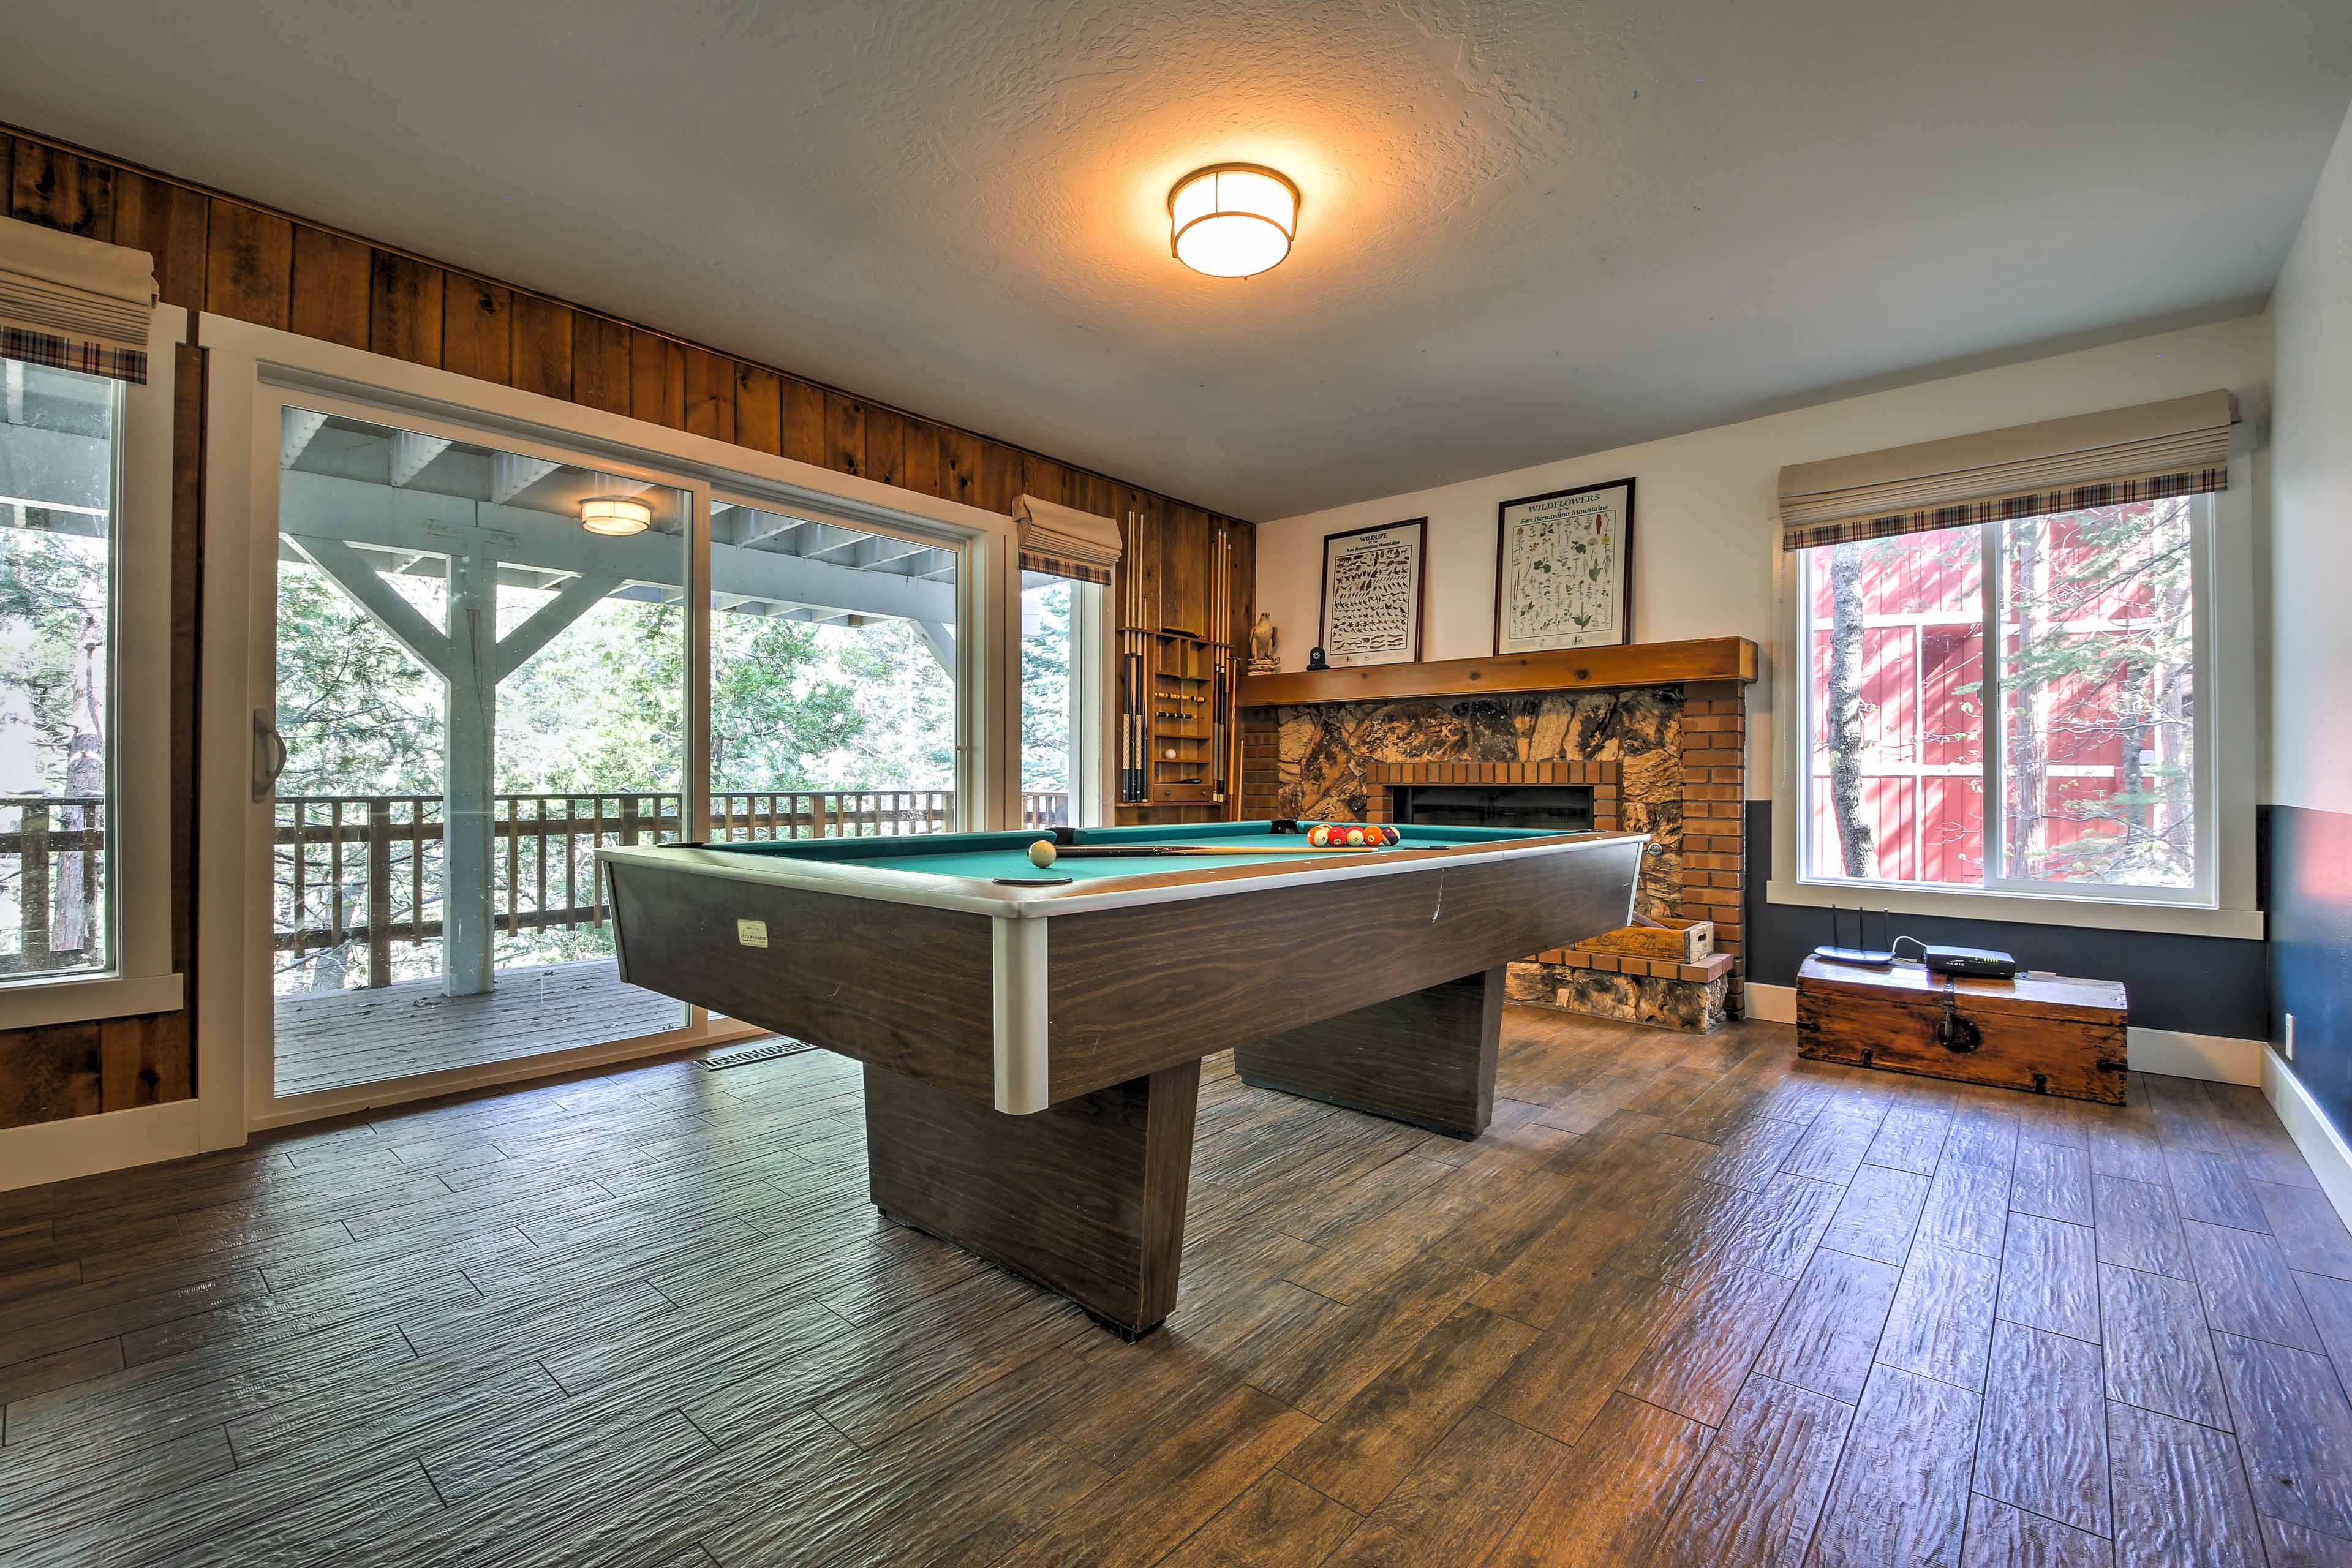 Play a game of pool in the game room.